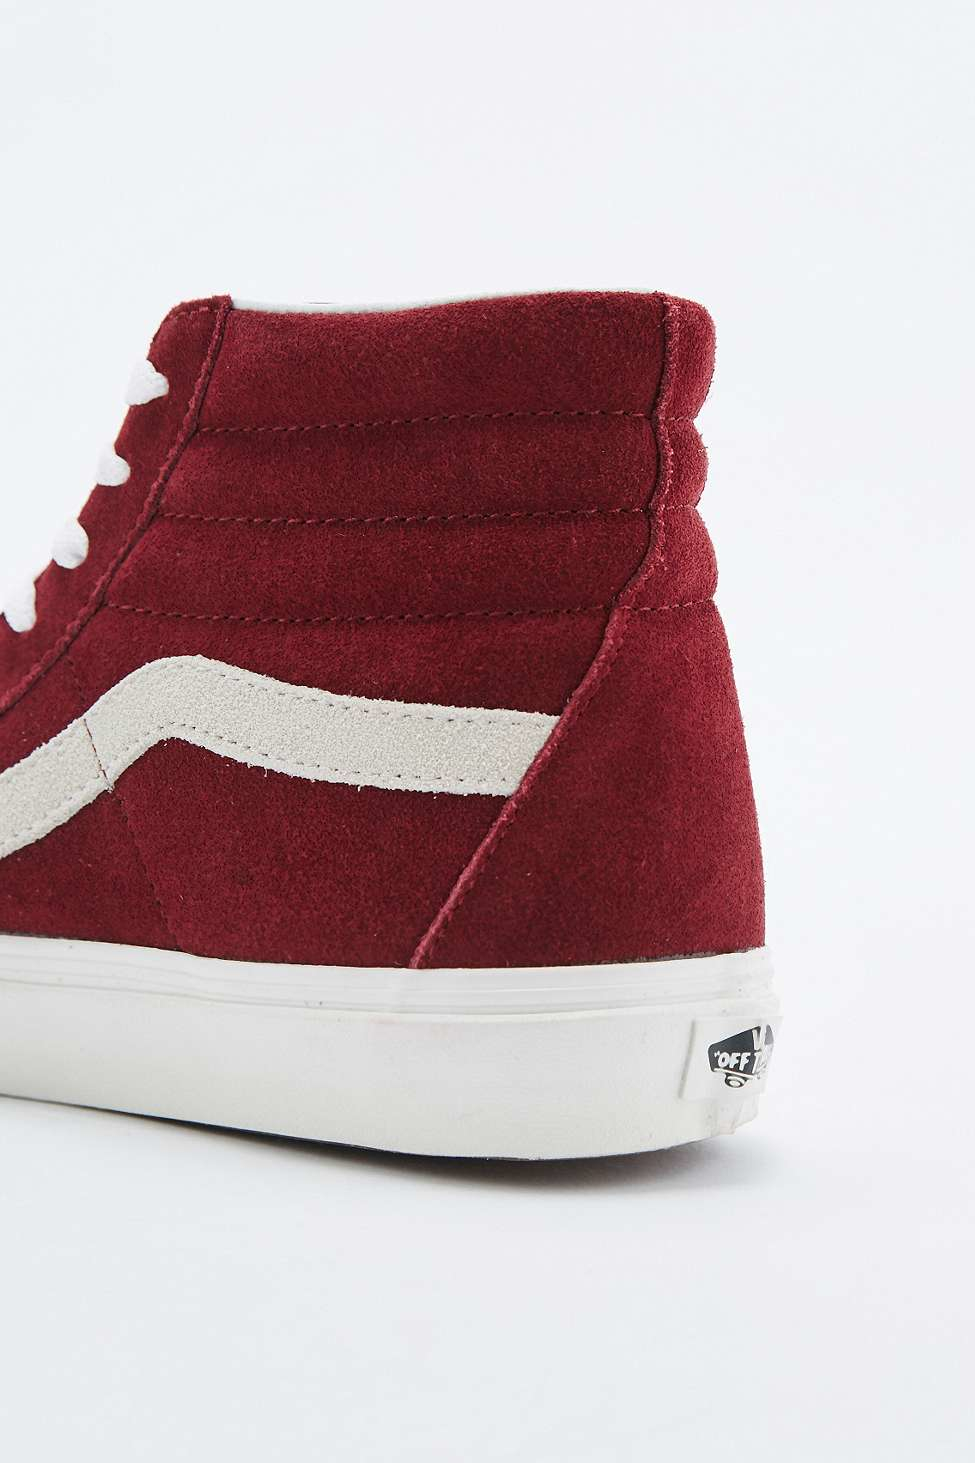 5ddfa06bfe1fb0 Vans Sk8-hi Burgundy Suede Reissue Trainers in Purple for Men - Lyst